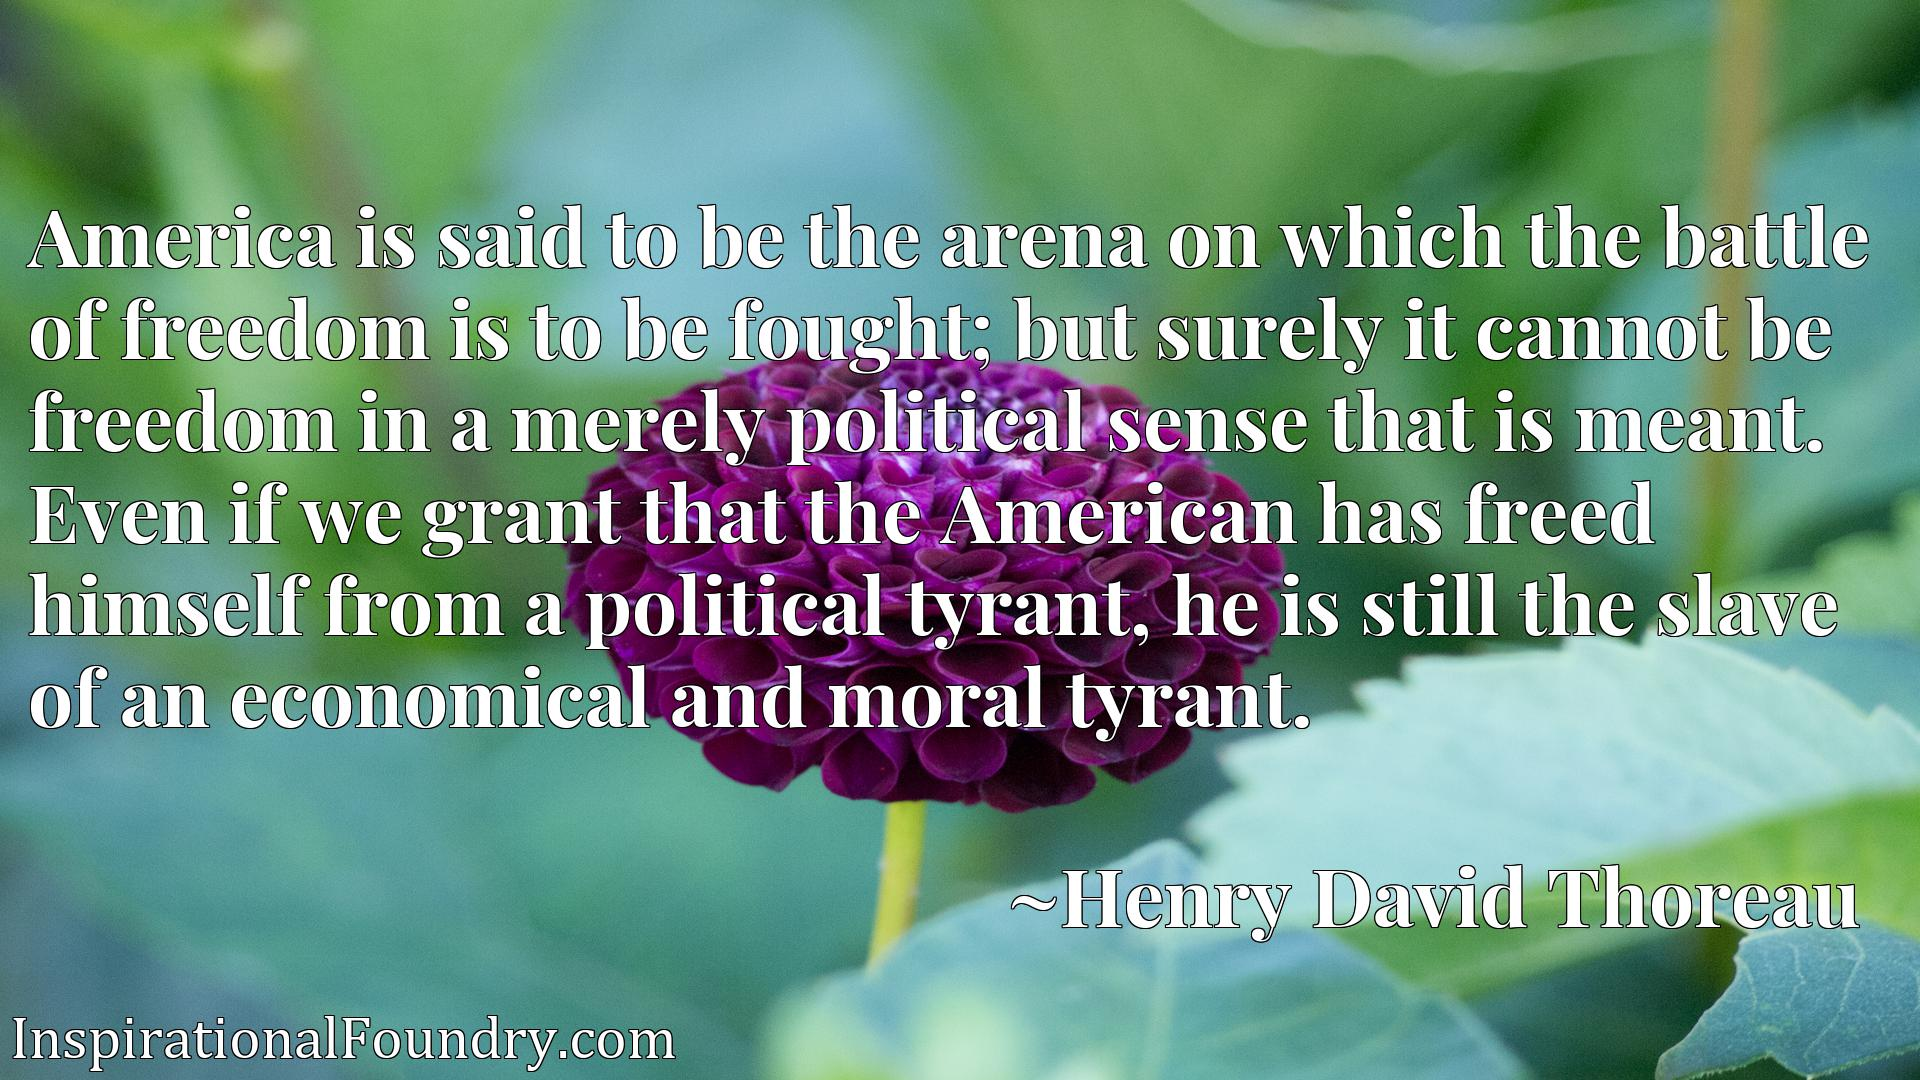 America is said to be the arena on which the battle of freedom is to be fought; but surely it cannot be freedom in a merely political sense that is meant. Even if we grant that the American has freed himself from a political tyrant, he is still the slave of an economical and moral tyrant.